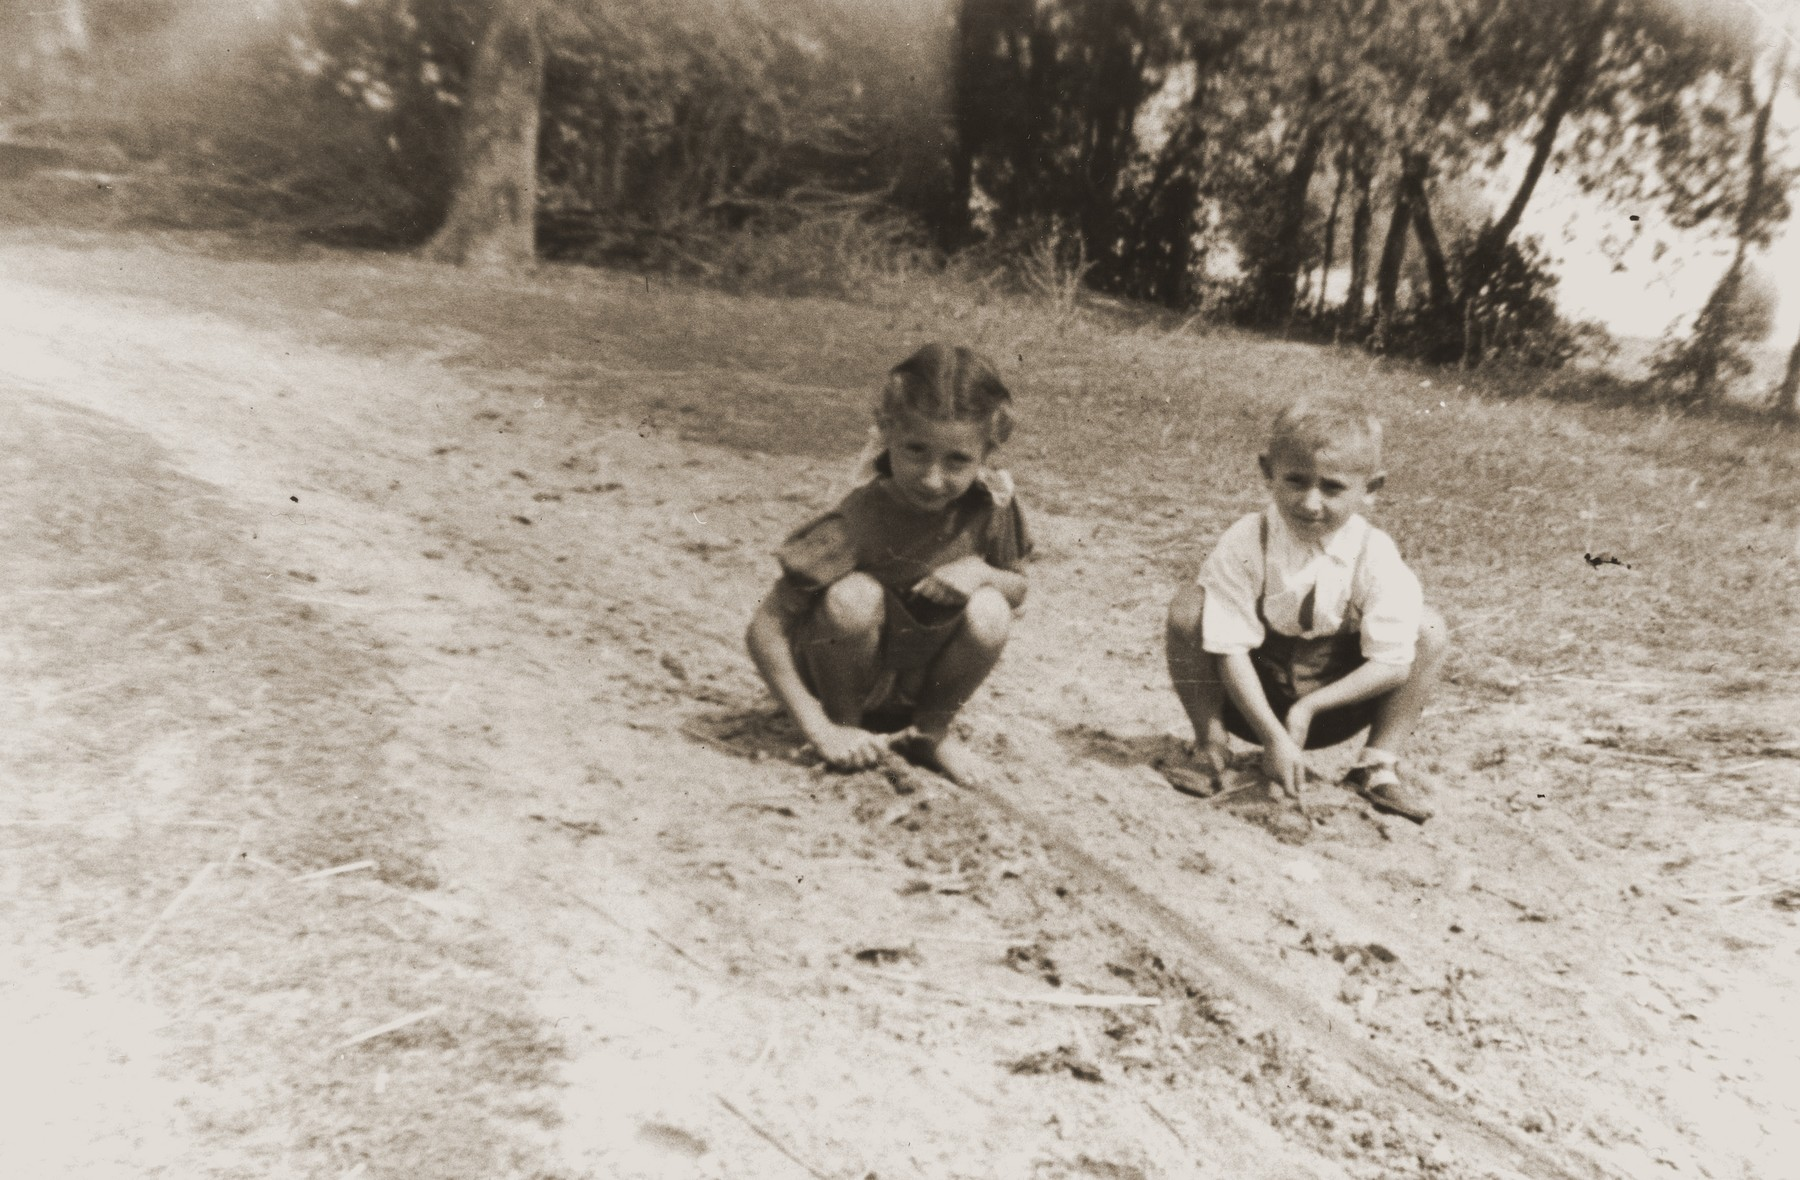 Zofja Fajnsztejn, a Jewish child in hiding, plays with a Polish child in a Warsaw park.